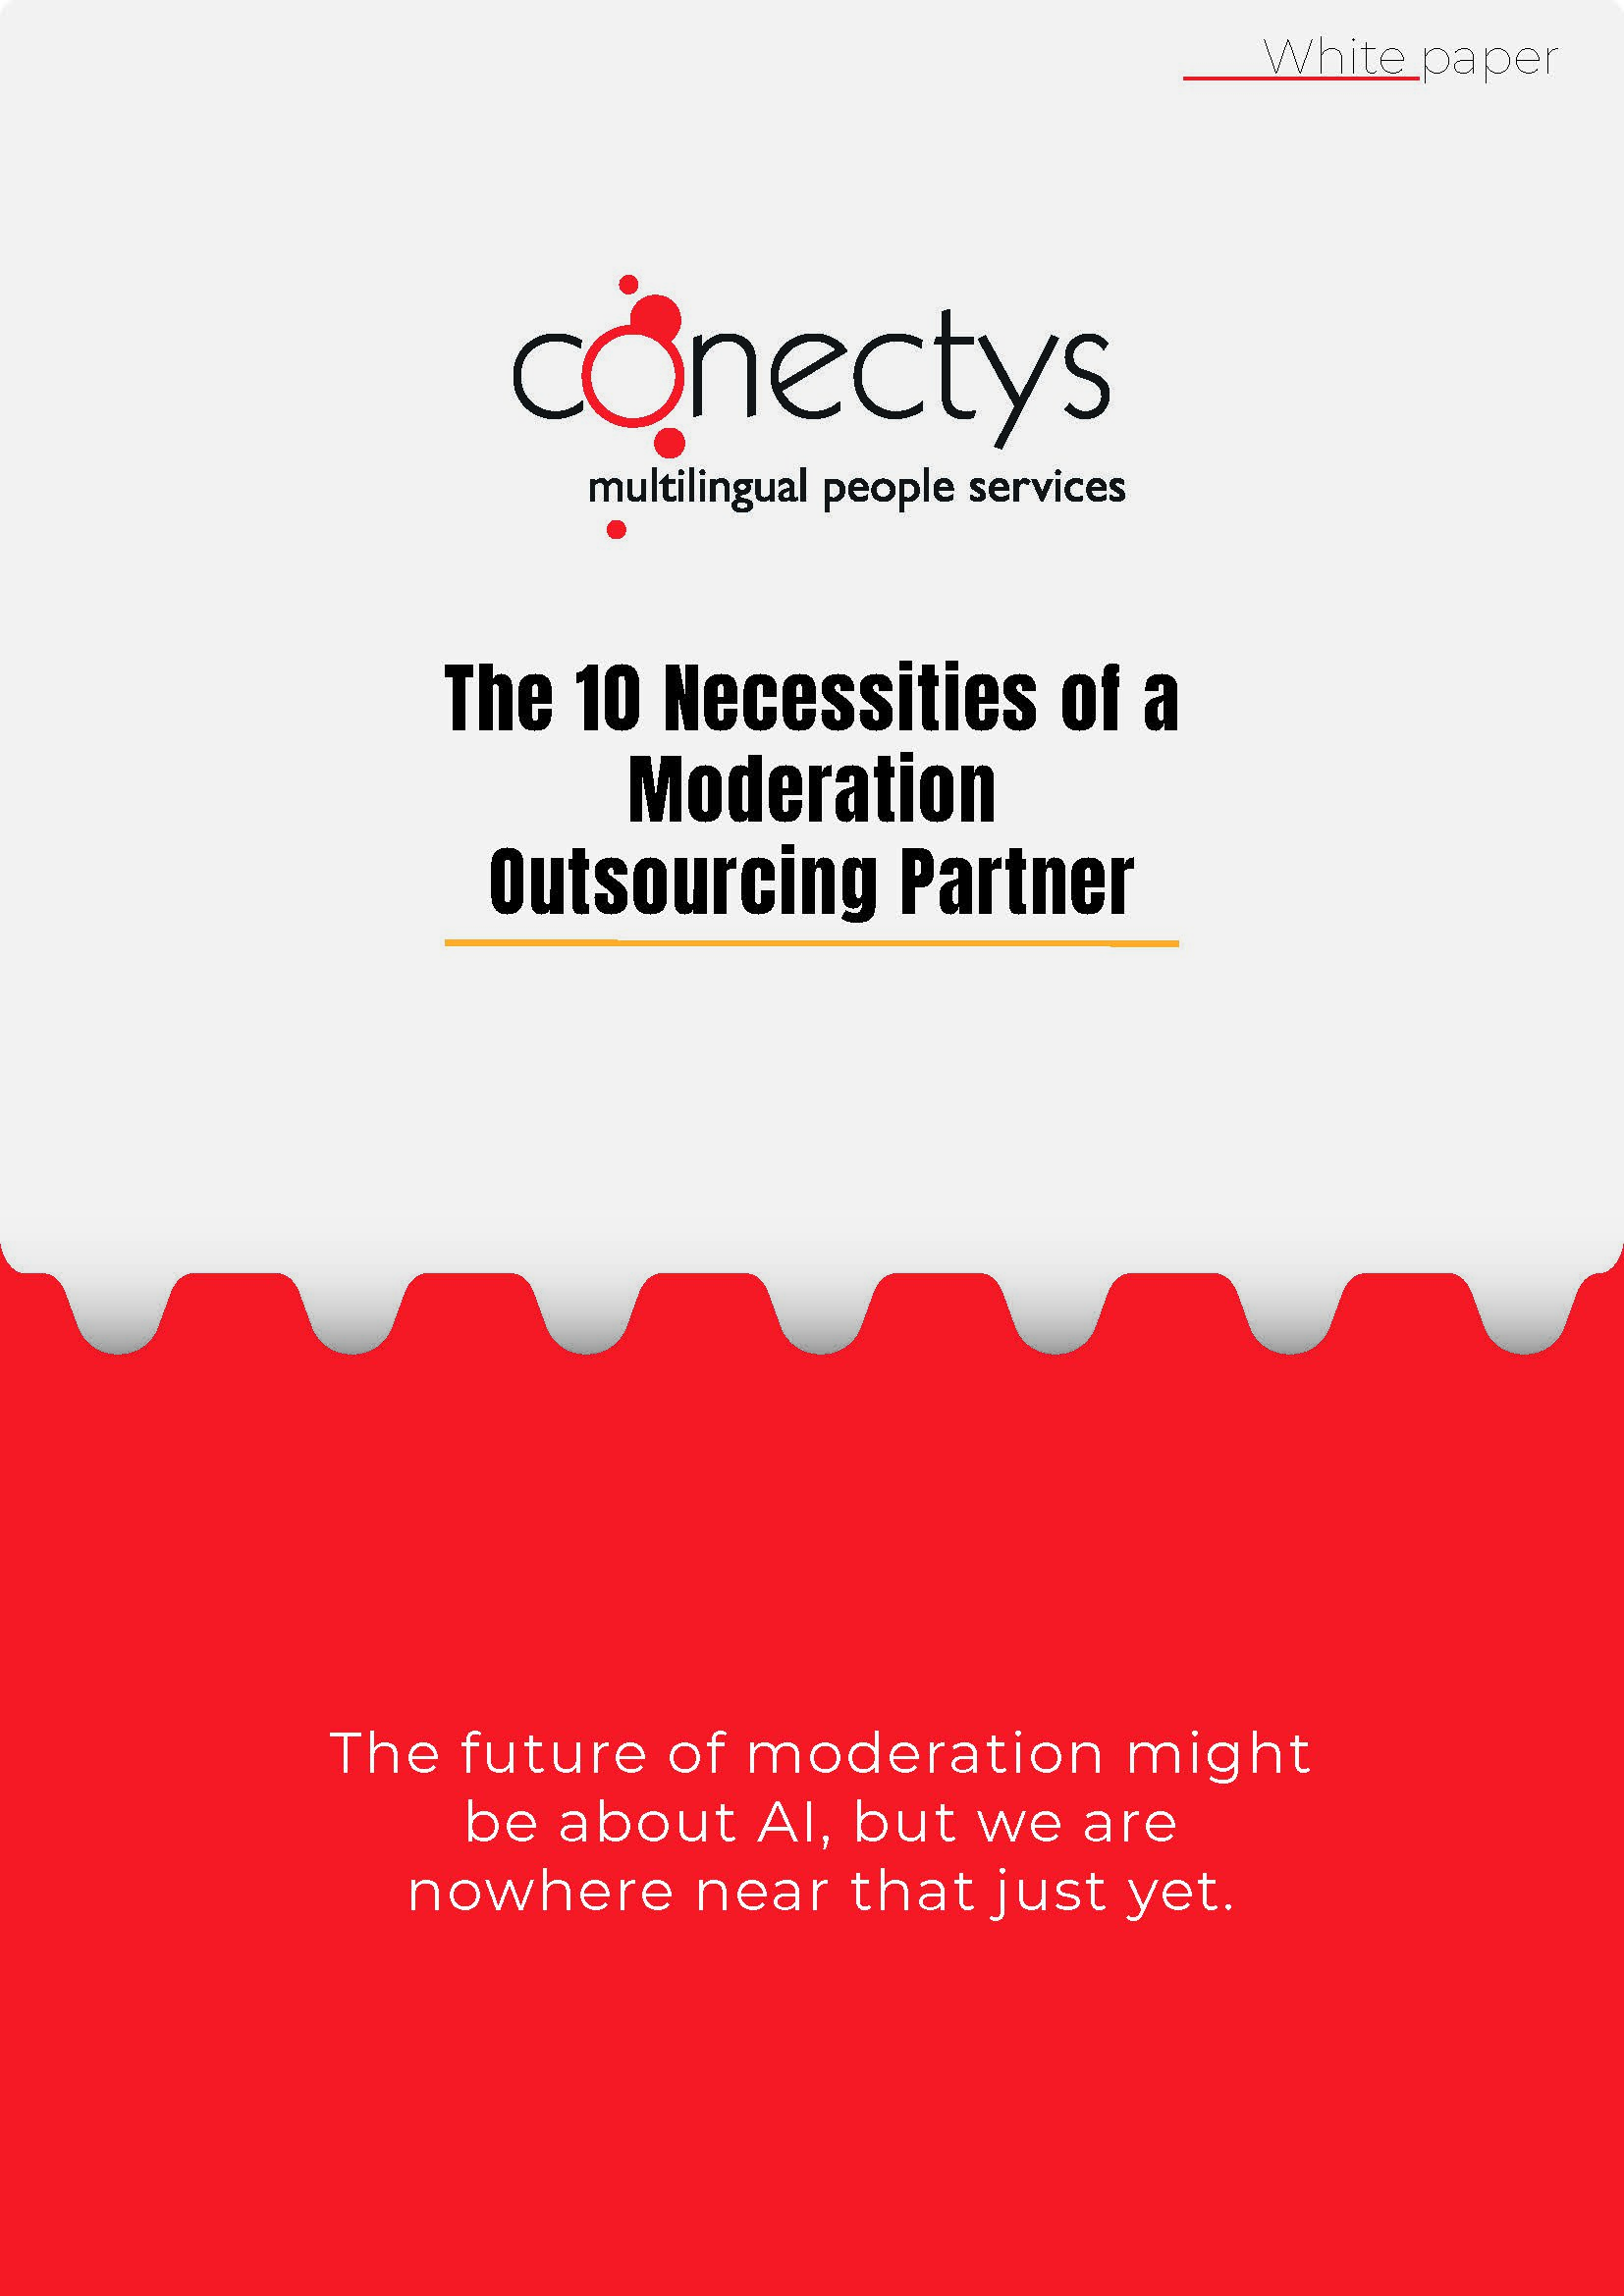 The 10 Necessities of a Moderation Outsourcing Partner